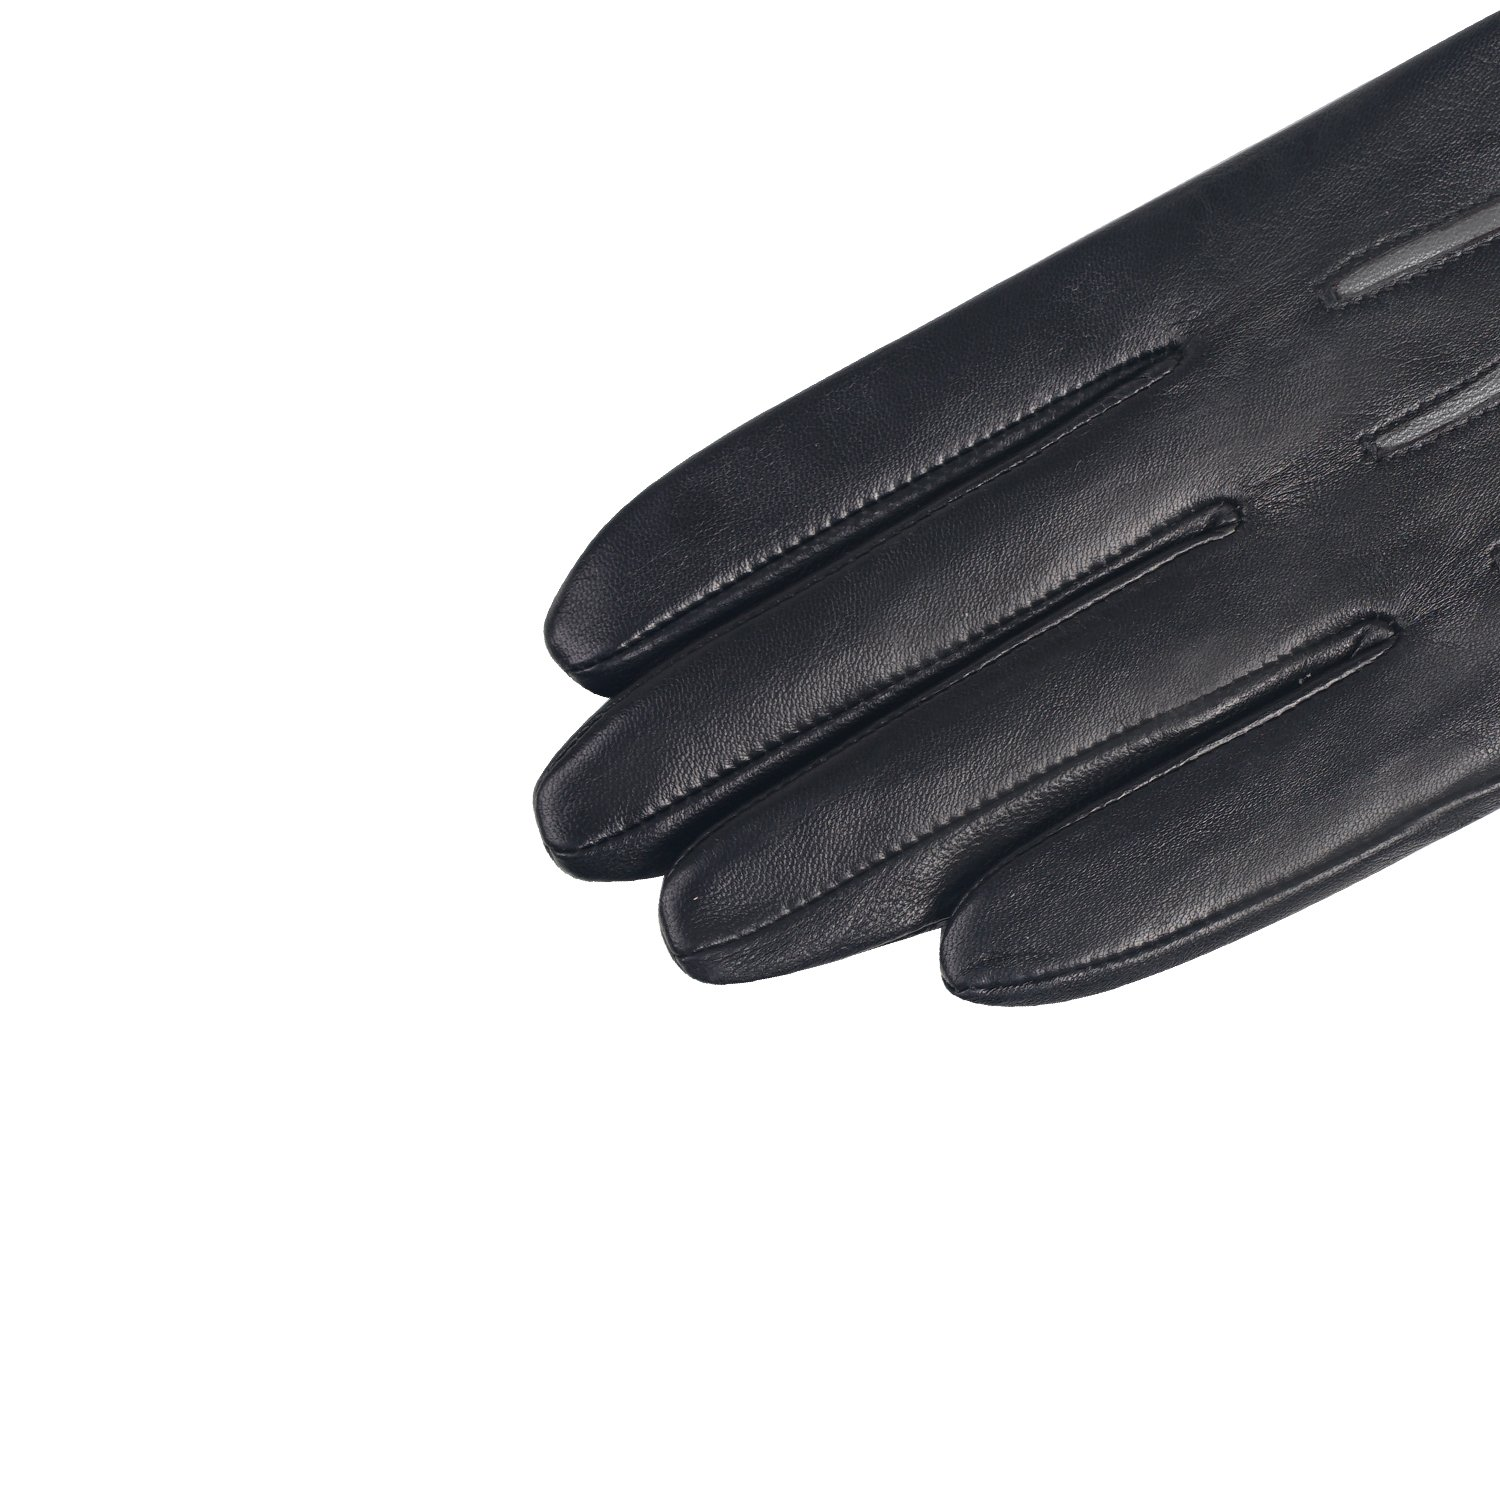 GSG Womens Feminine Colorblock Bow Touchscreen Driving Gloves Ladies Genuine Leather Warm Outdoor Gloves Winter Nice Gifts Black 7 by GSG (Image #5)